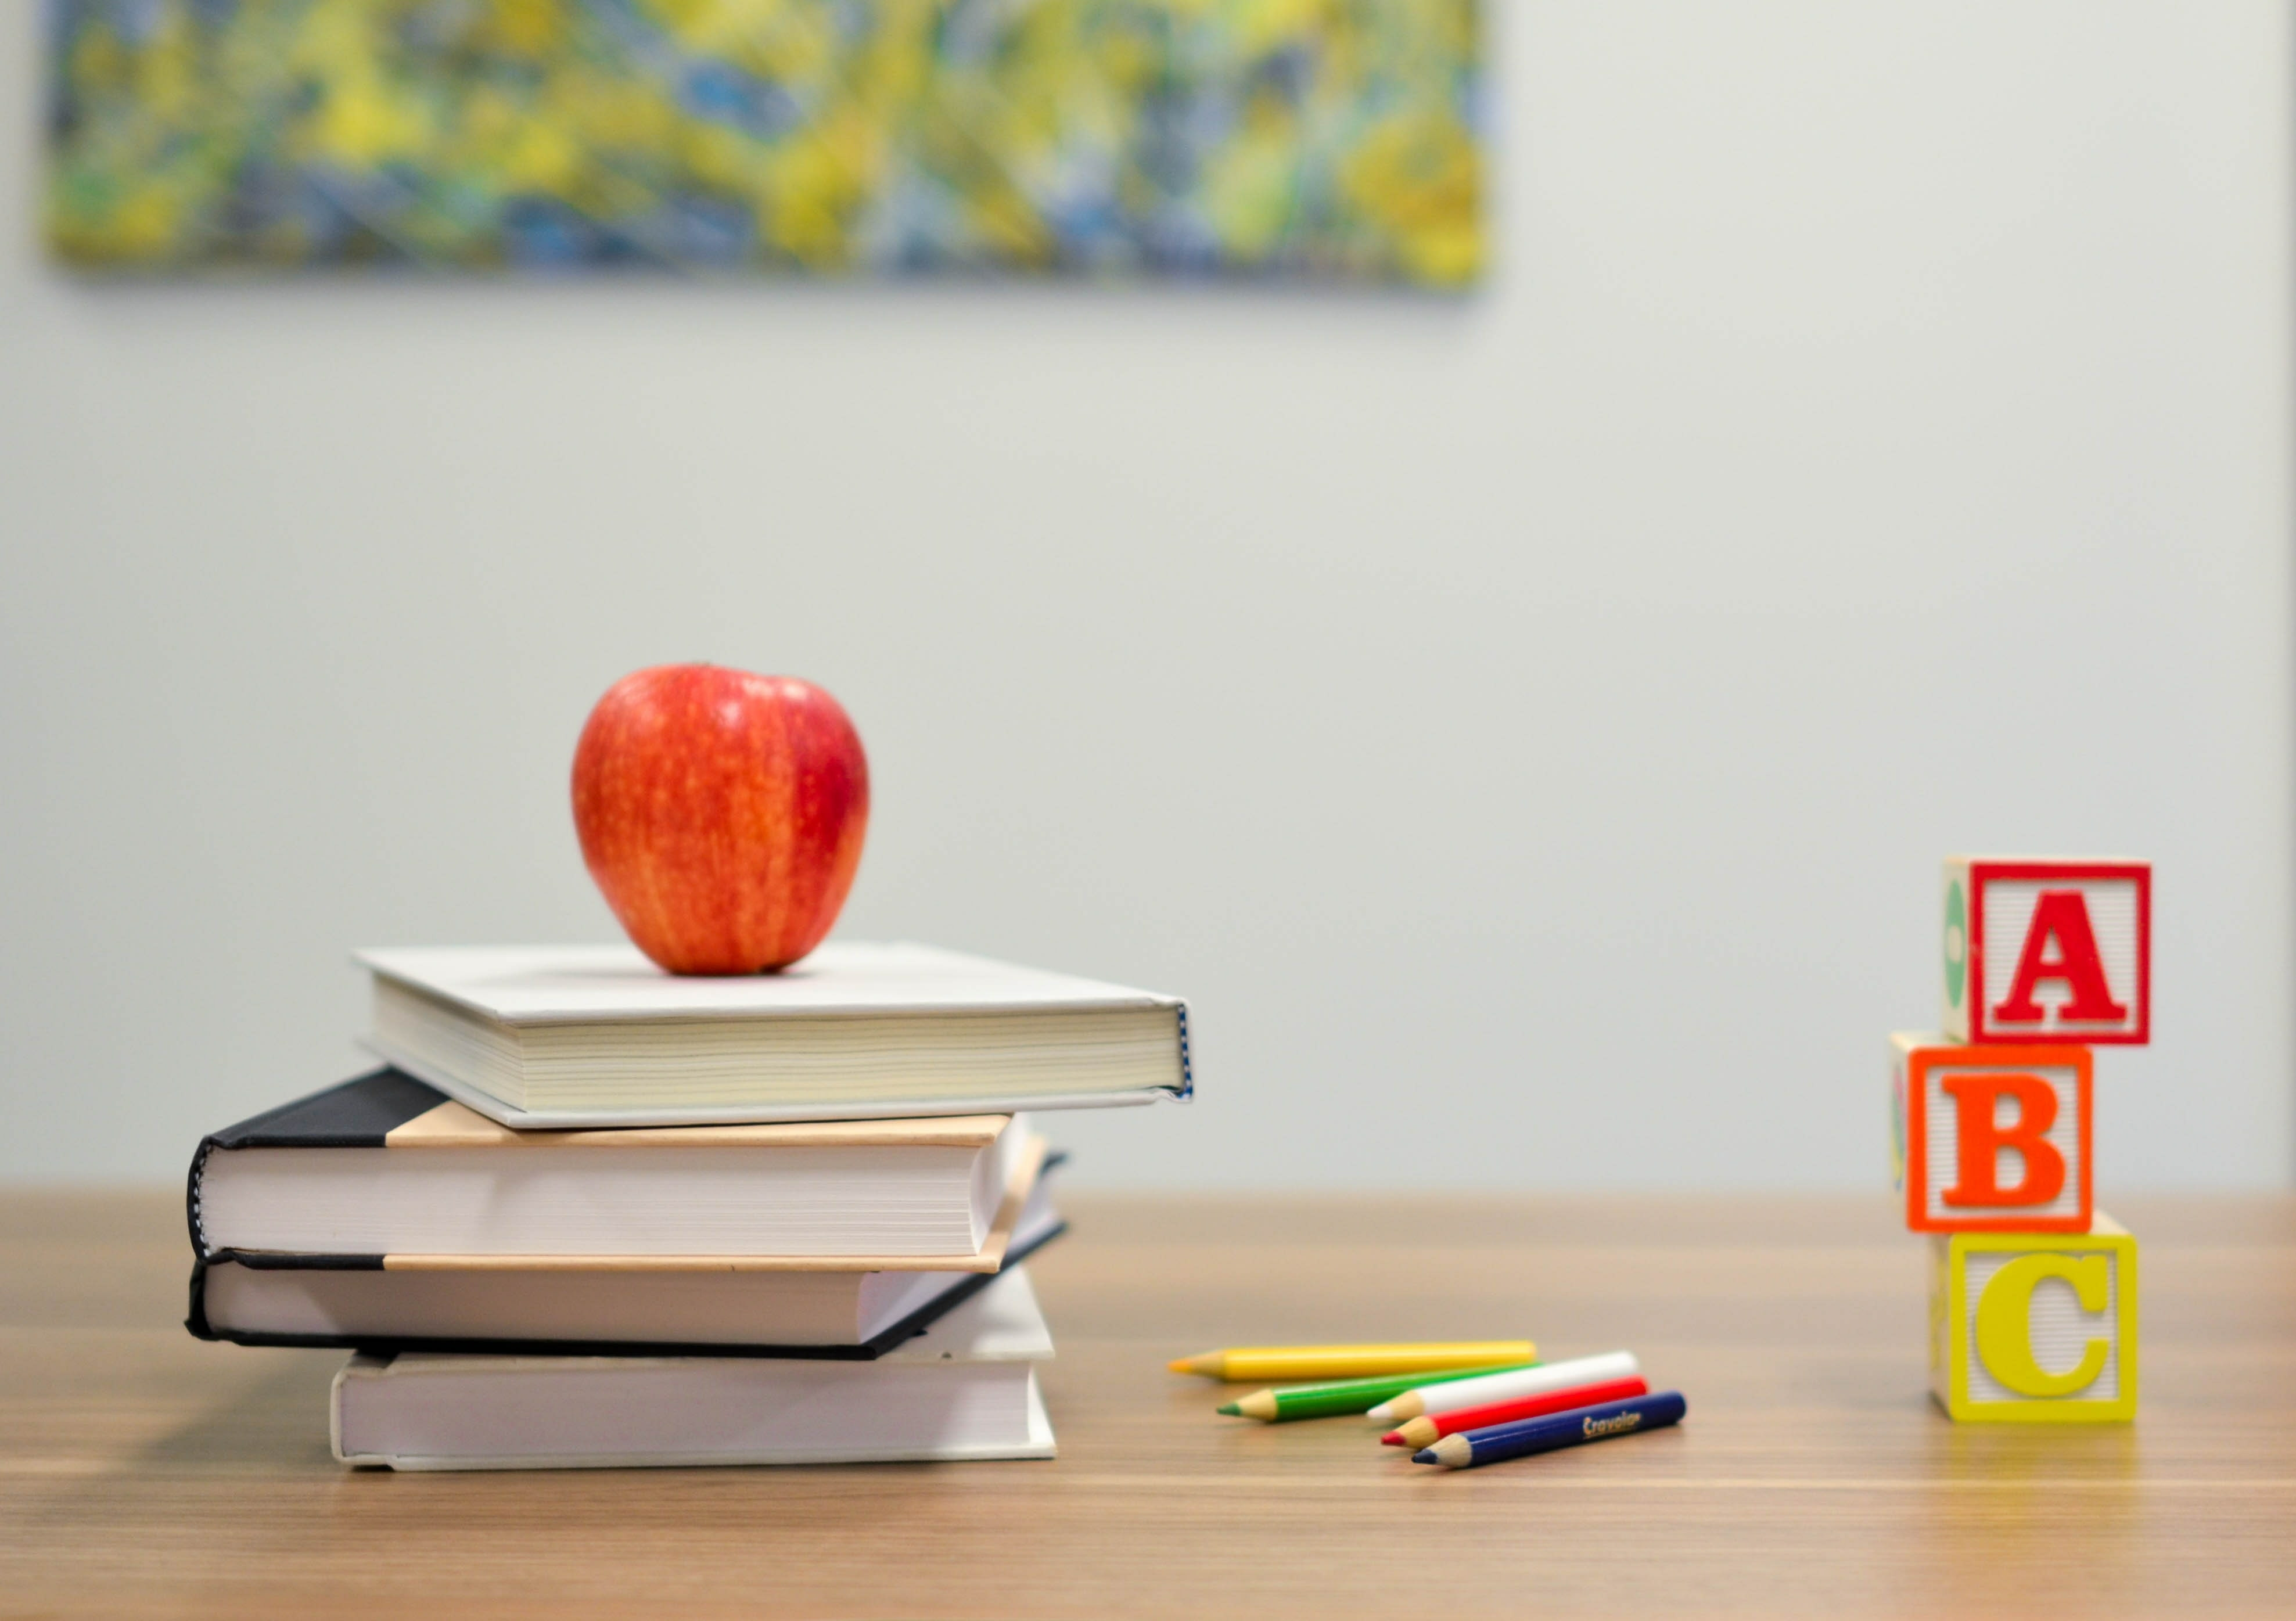 A red apple sitting on top of three books with colorful wooden alphabet blocks on the right.